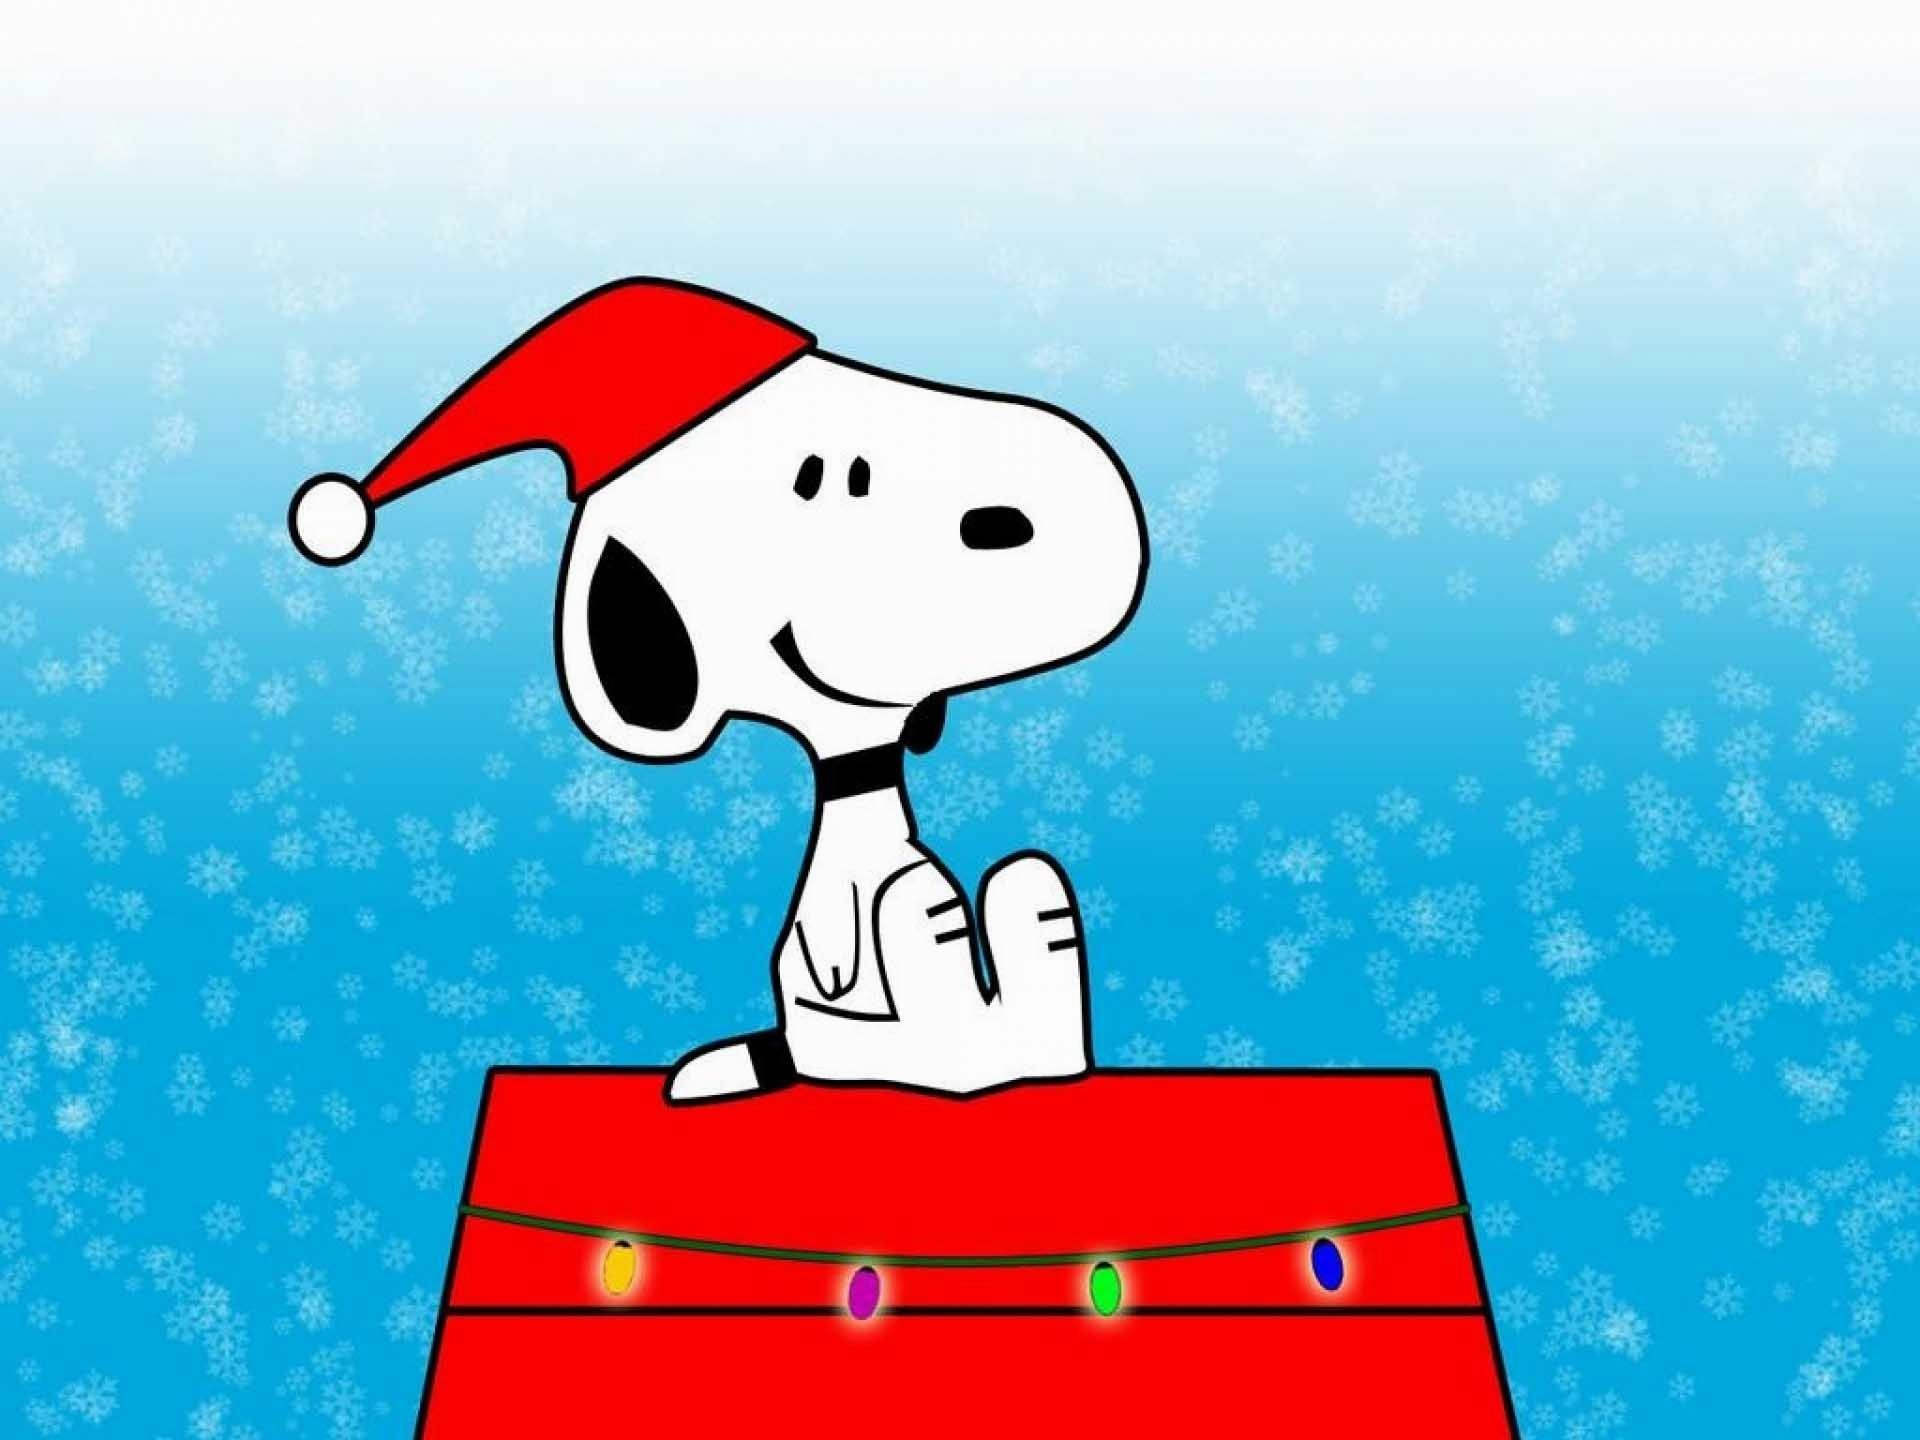 Wallpaper - Cute Snoopy Christmas Background - HD Wallpaper